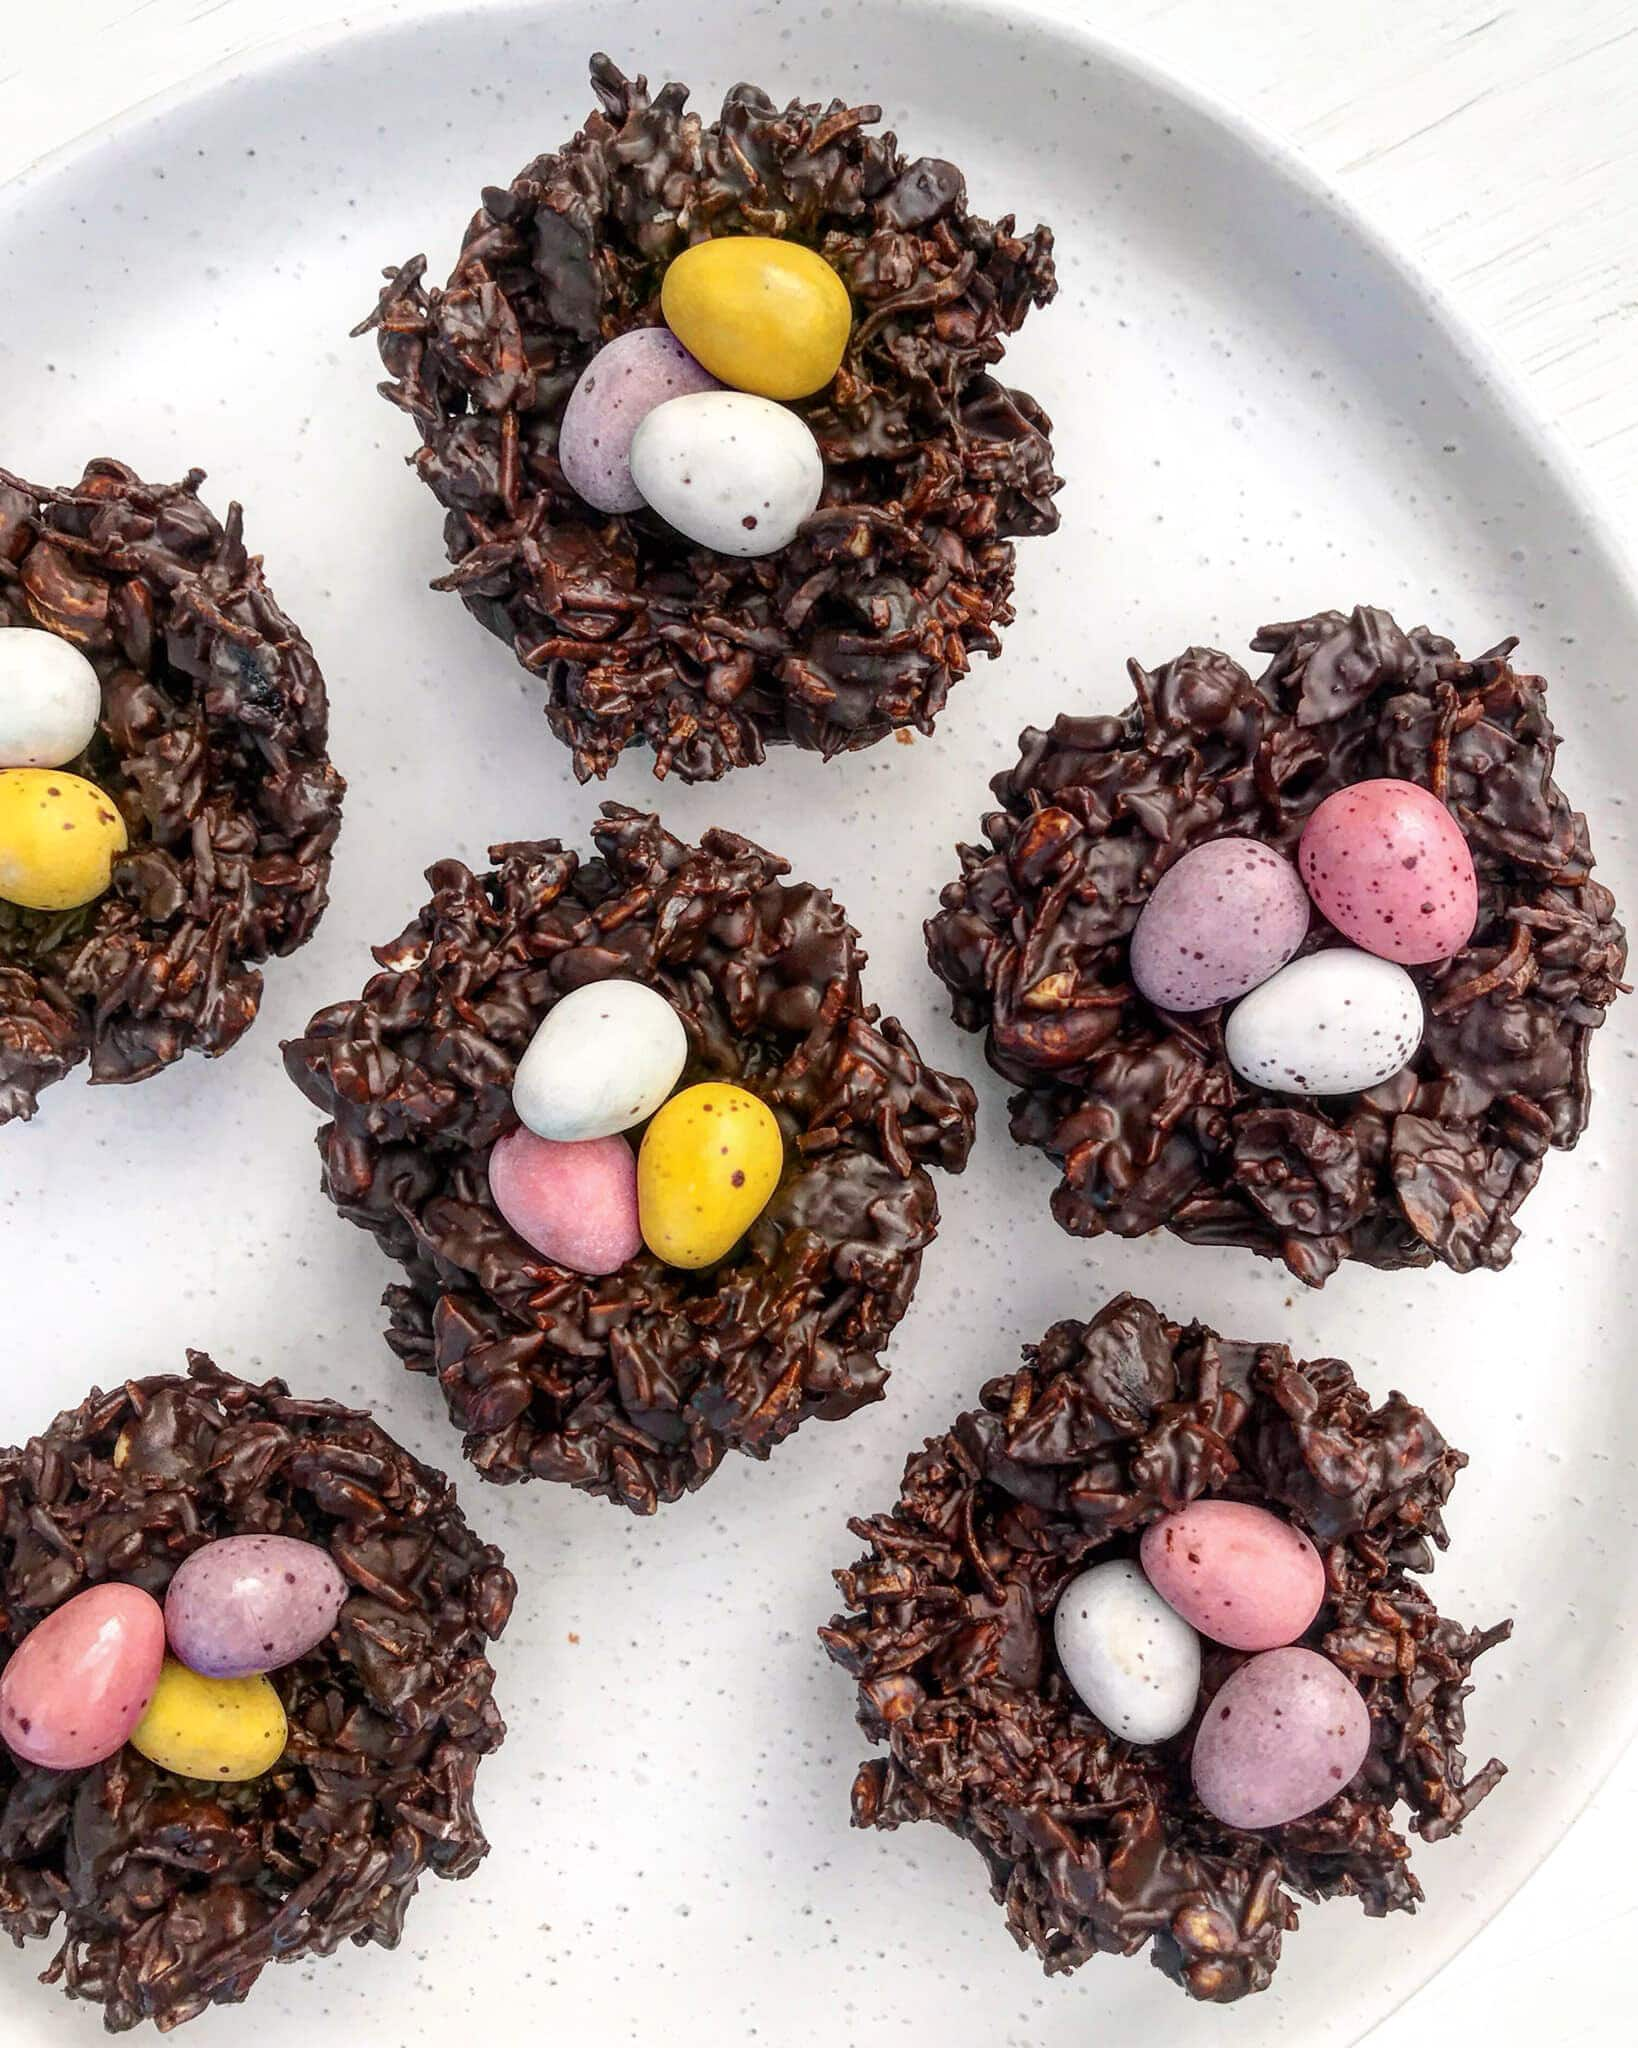 Chocolate easter nest topped with easter eggs.